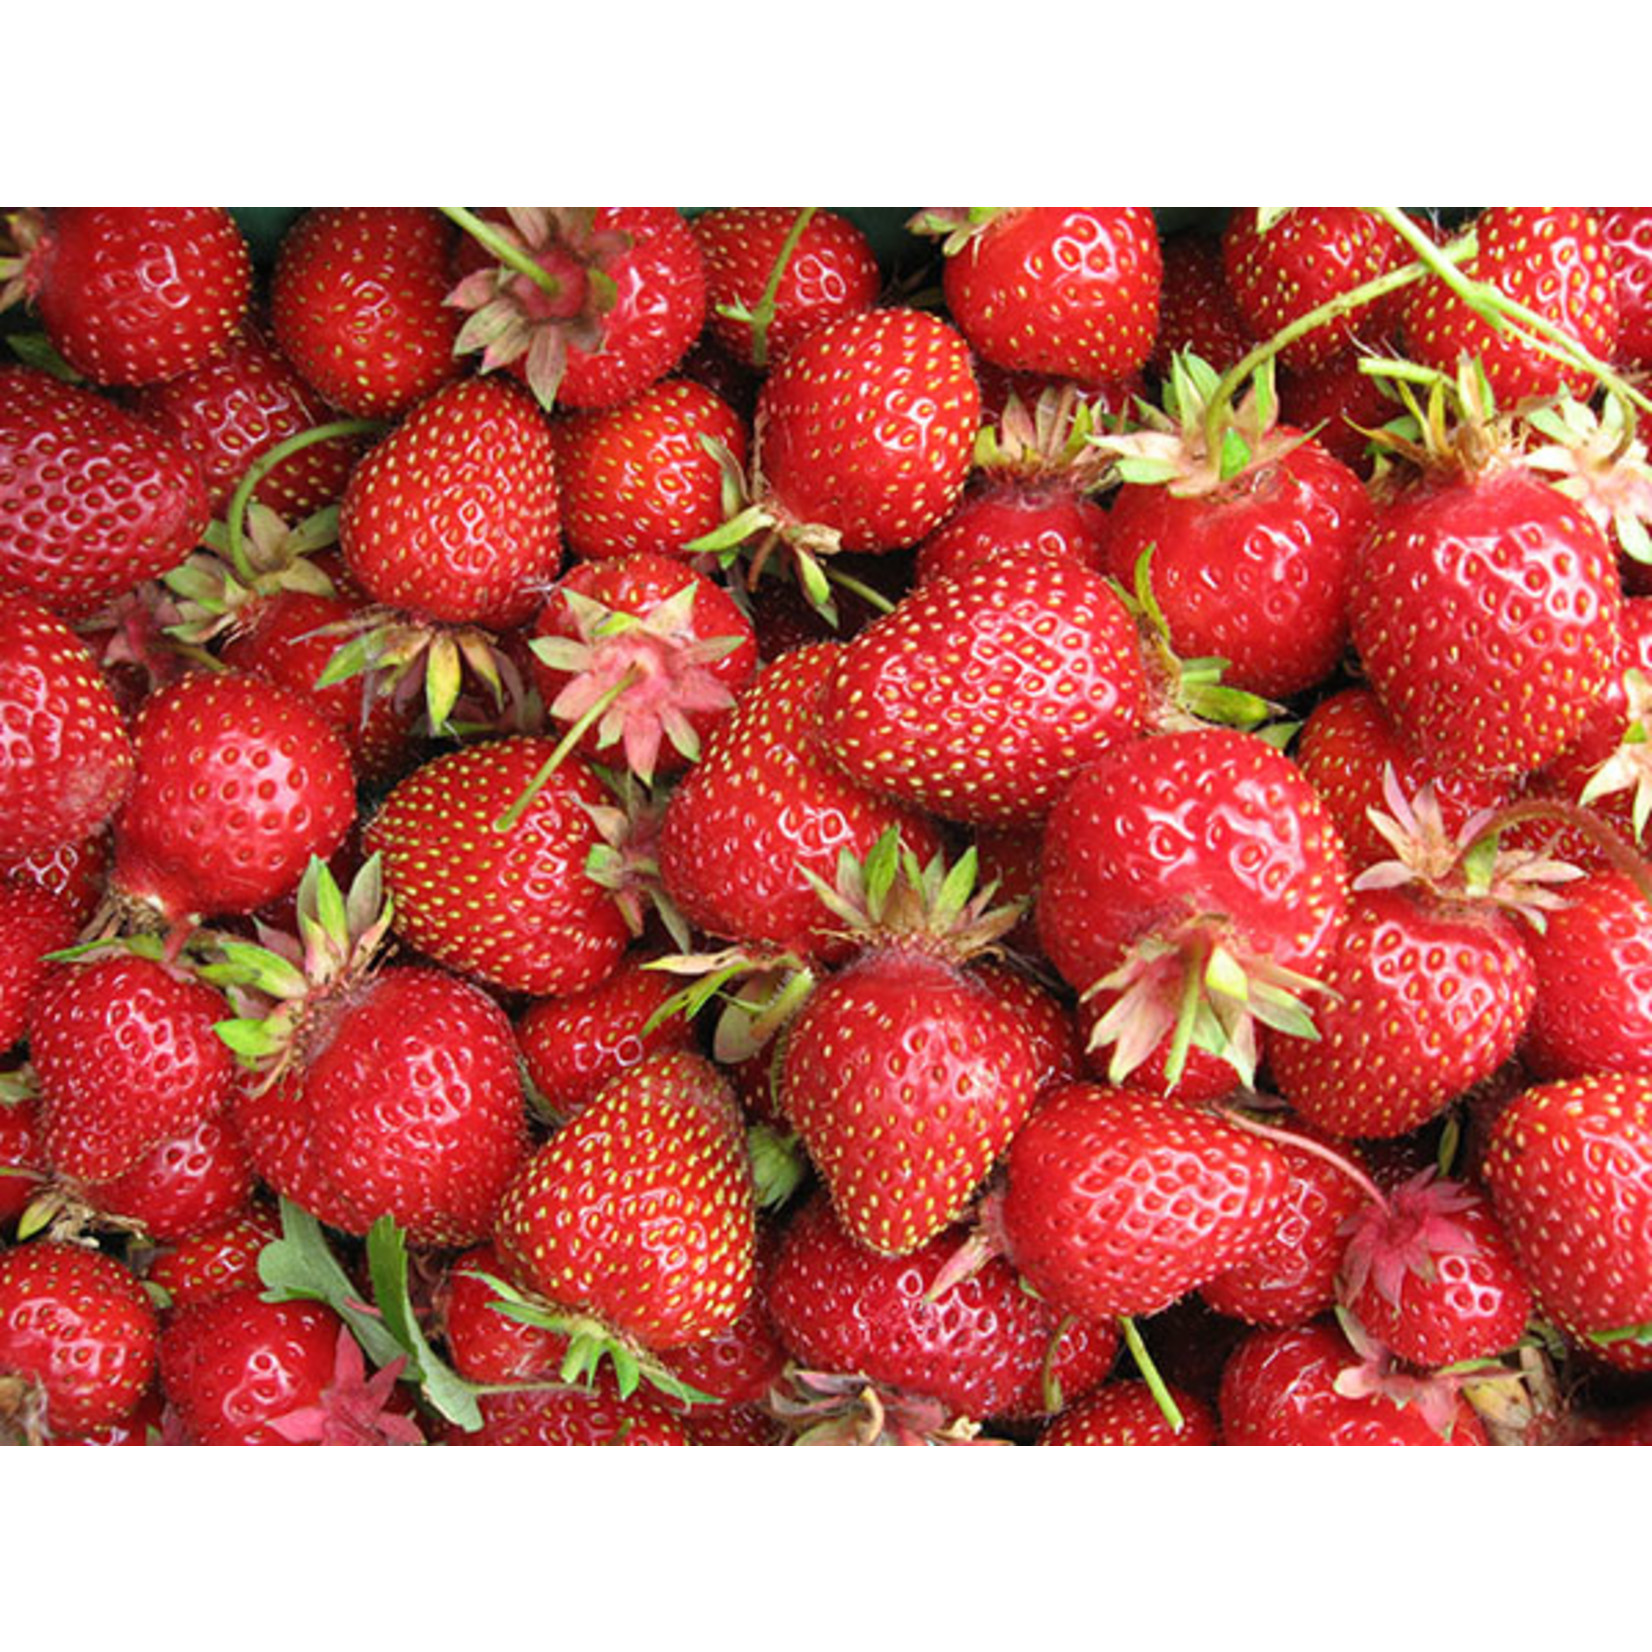 Strawberries (root pkg) - Junebearing (10 roots)